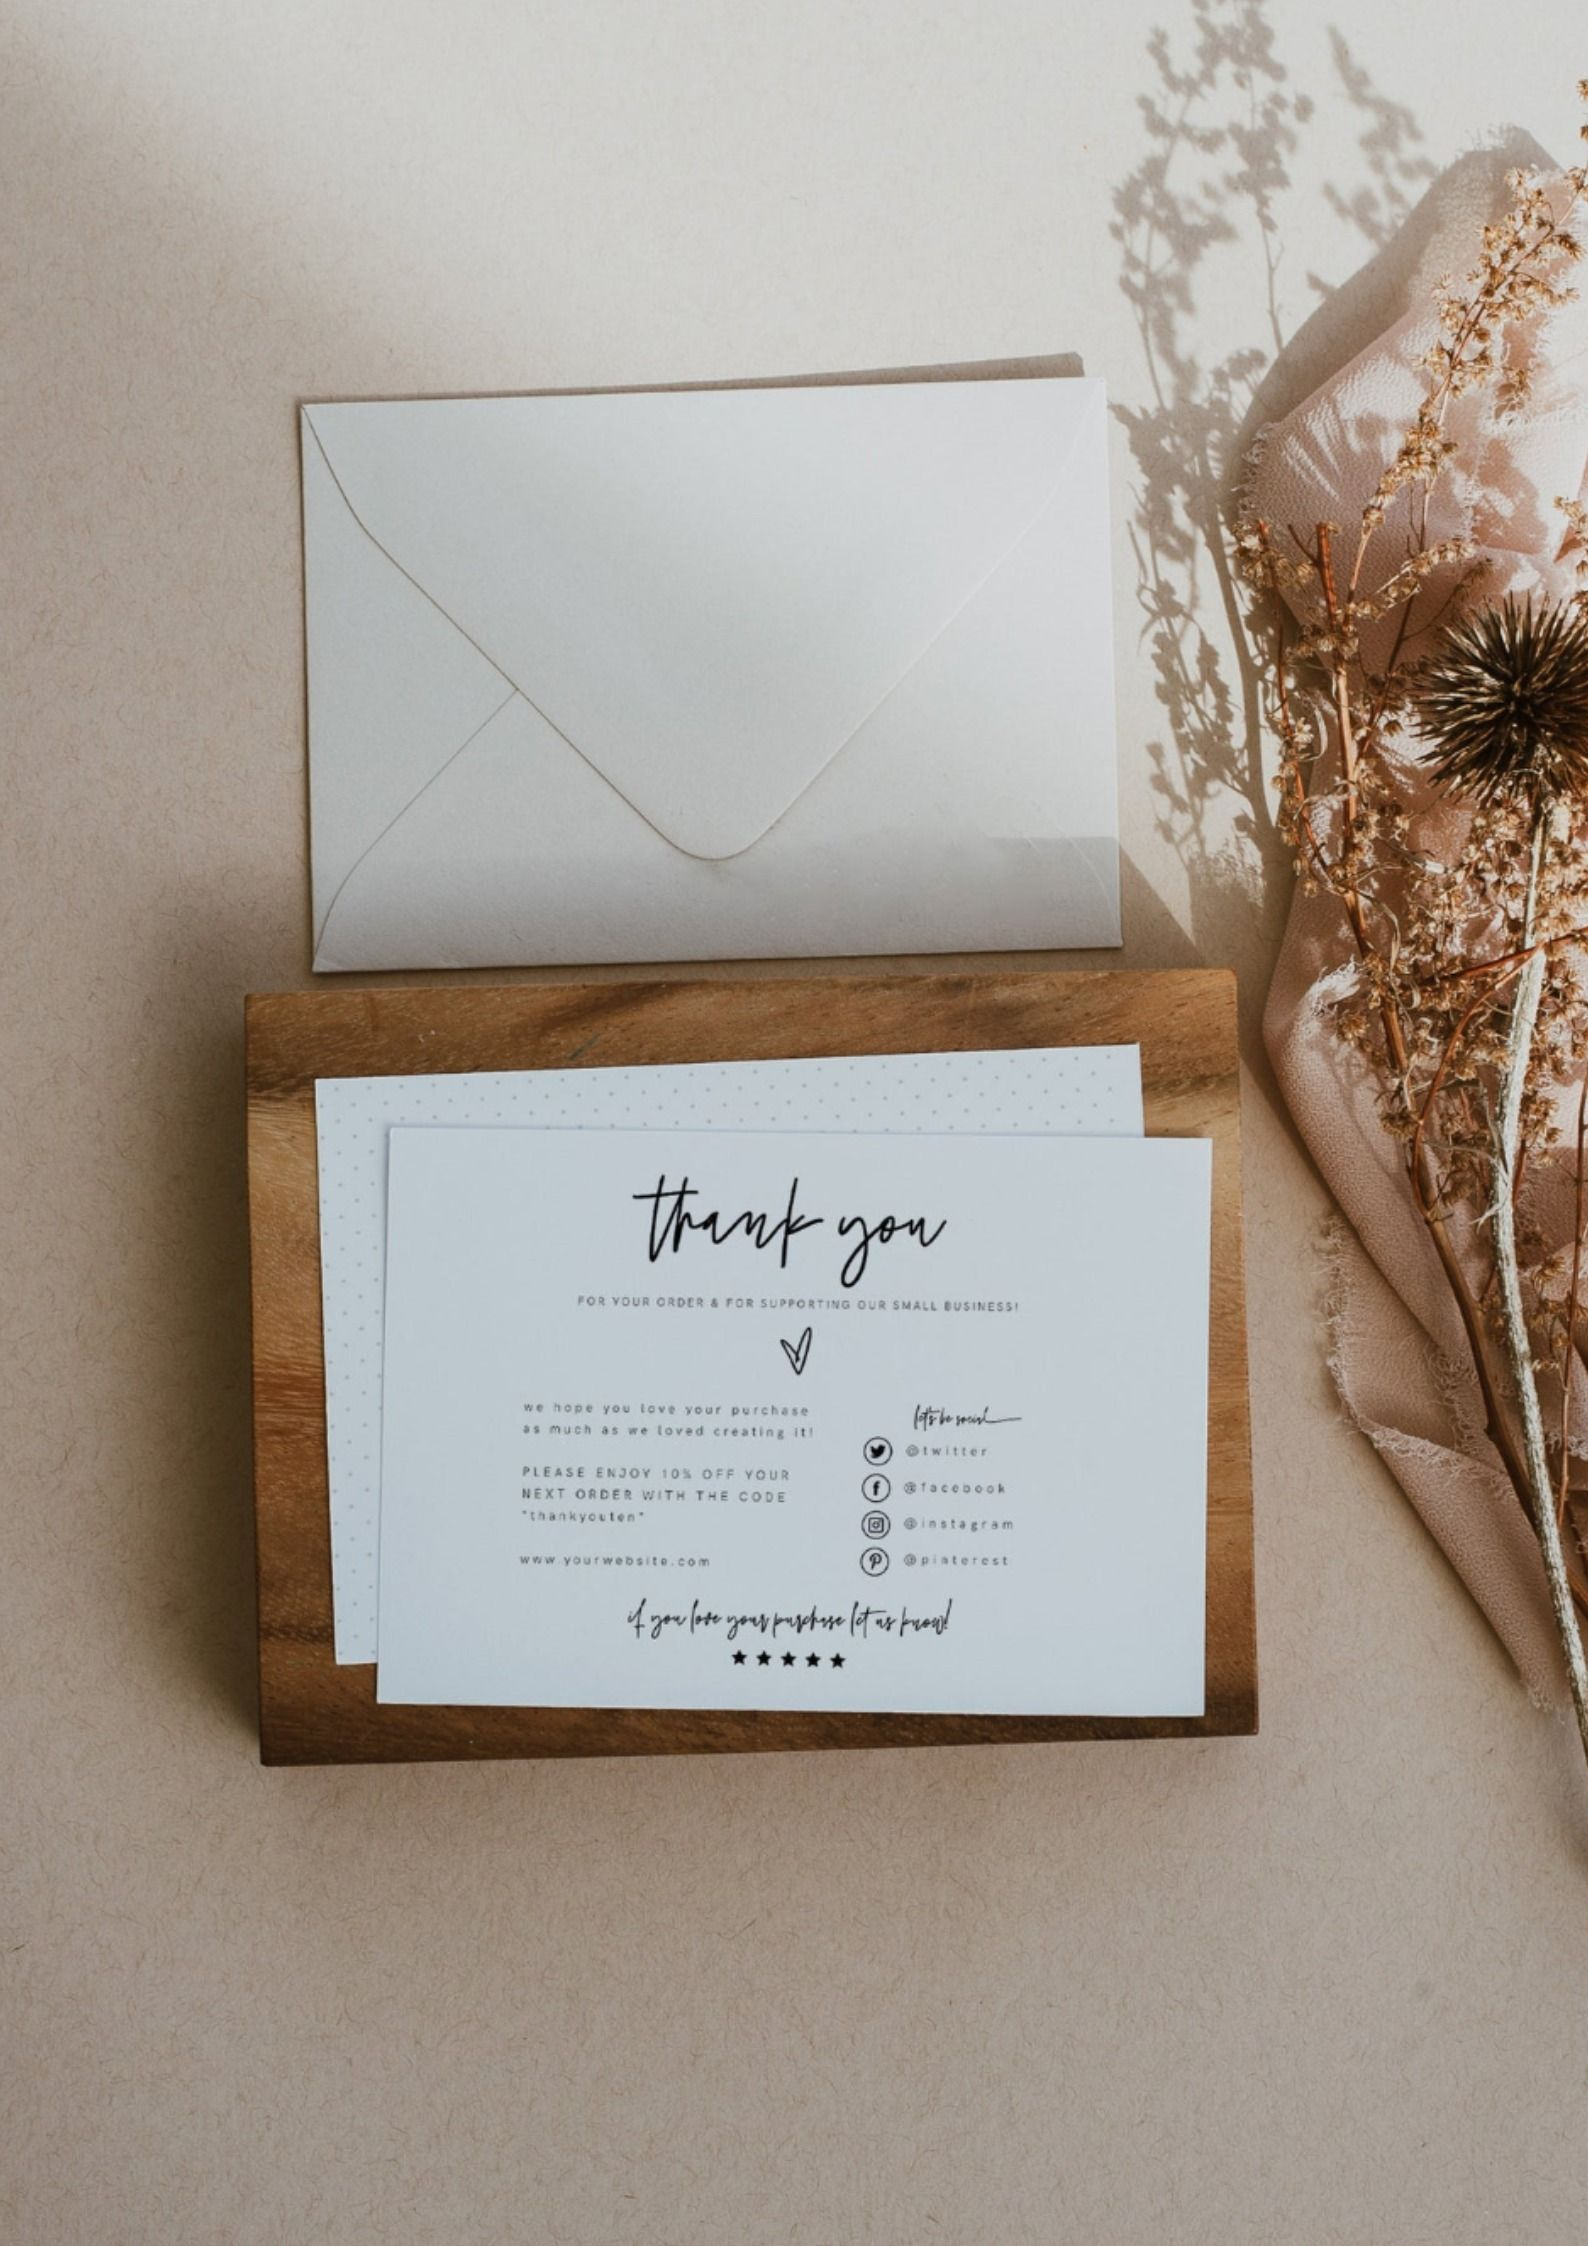 Sofia Small Business Thank You Template Editable Small Etsy In 2021 Business Thank You Cards Business Thank You Thank You Template